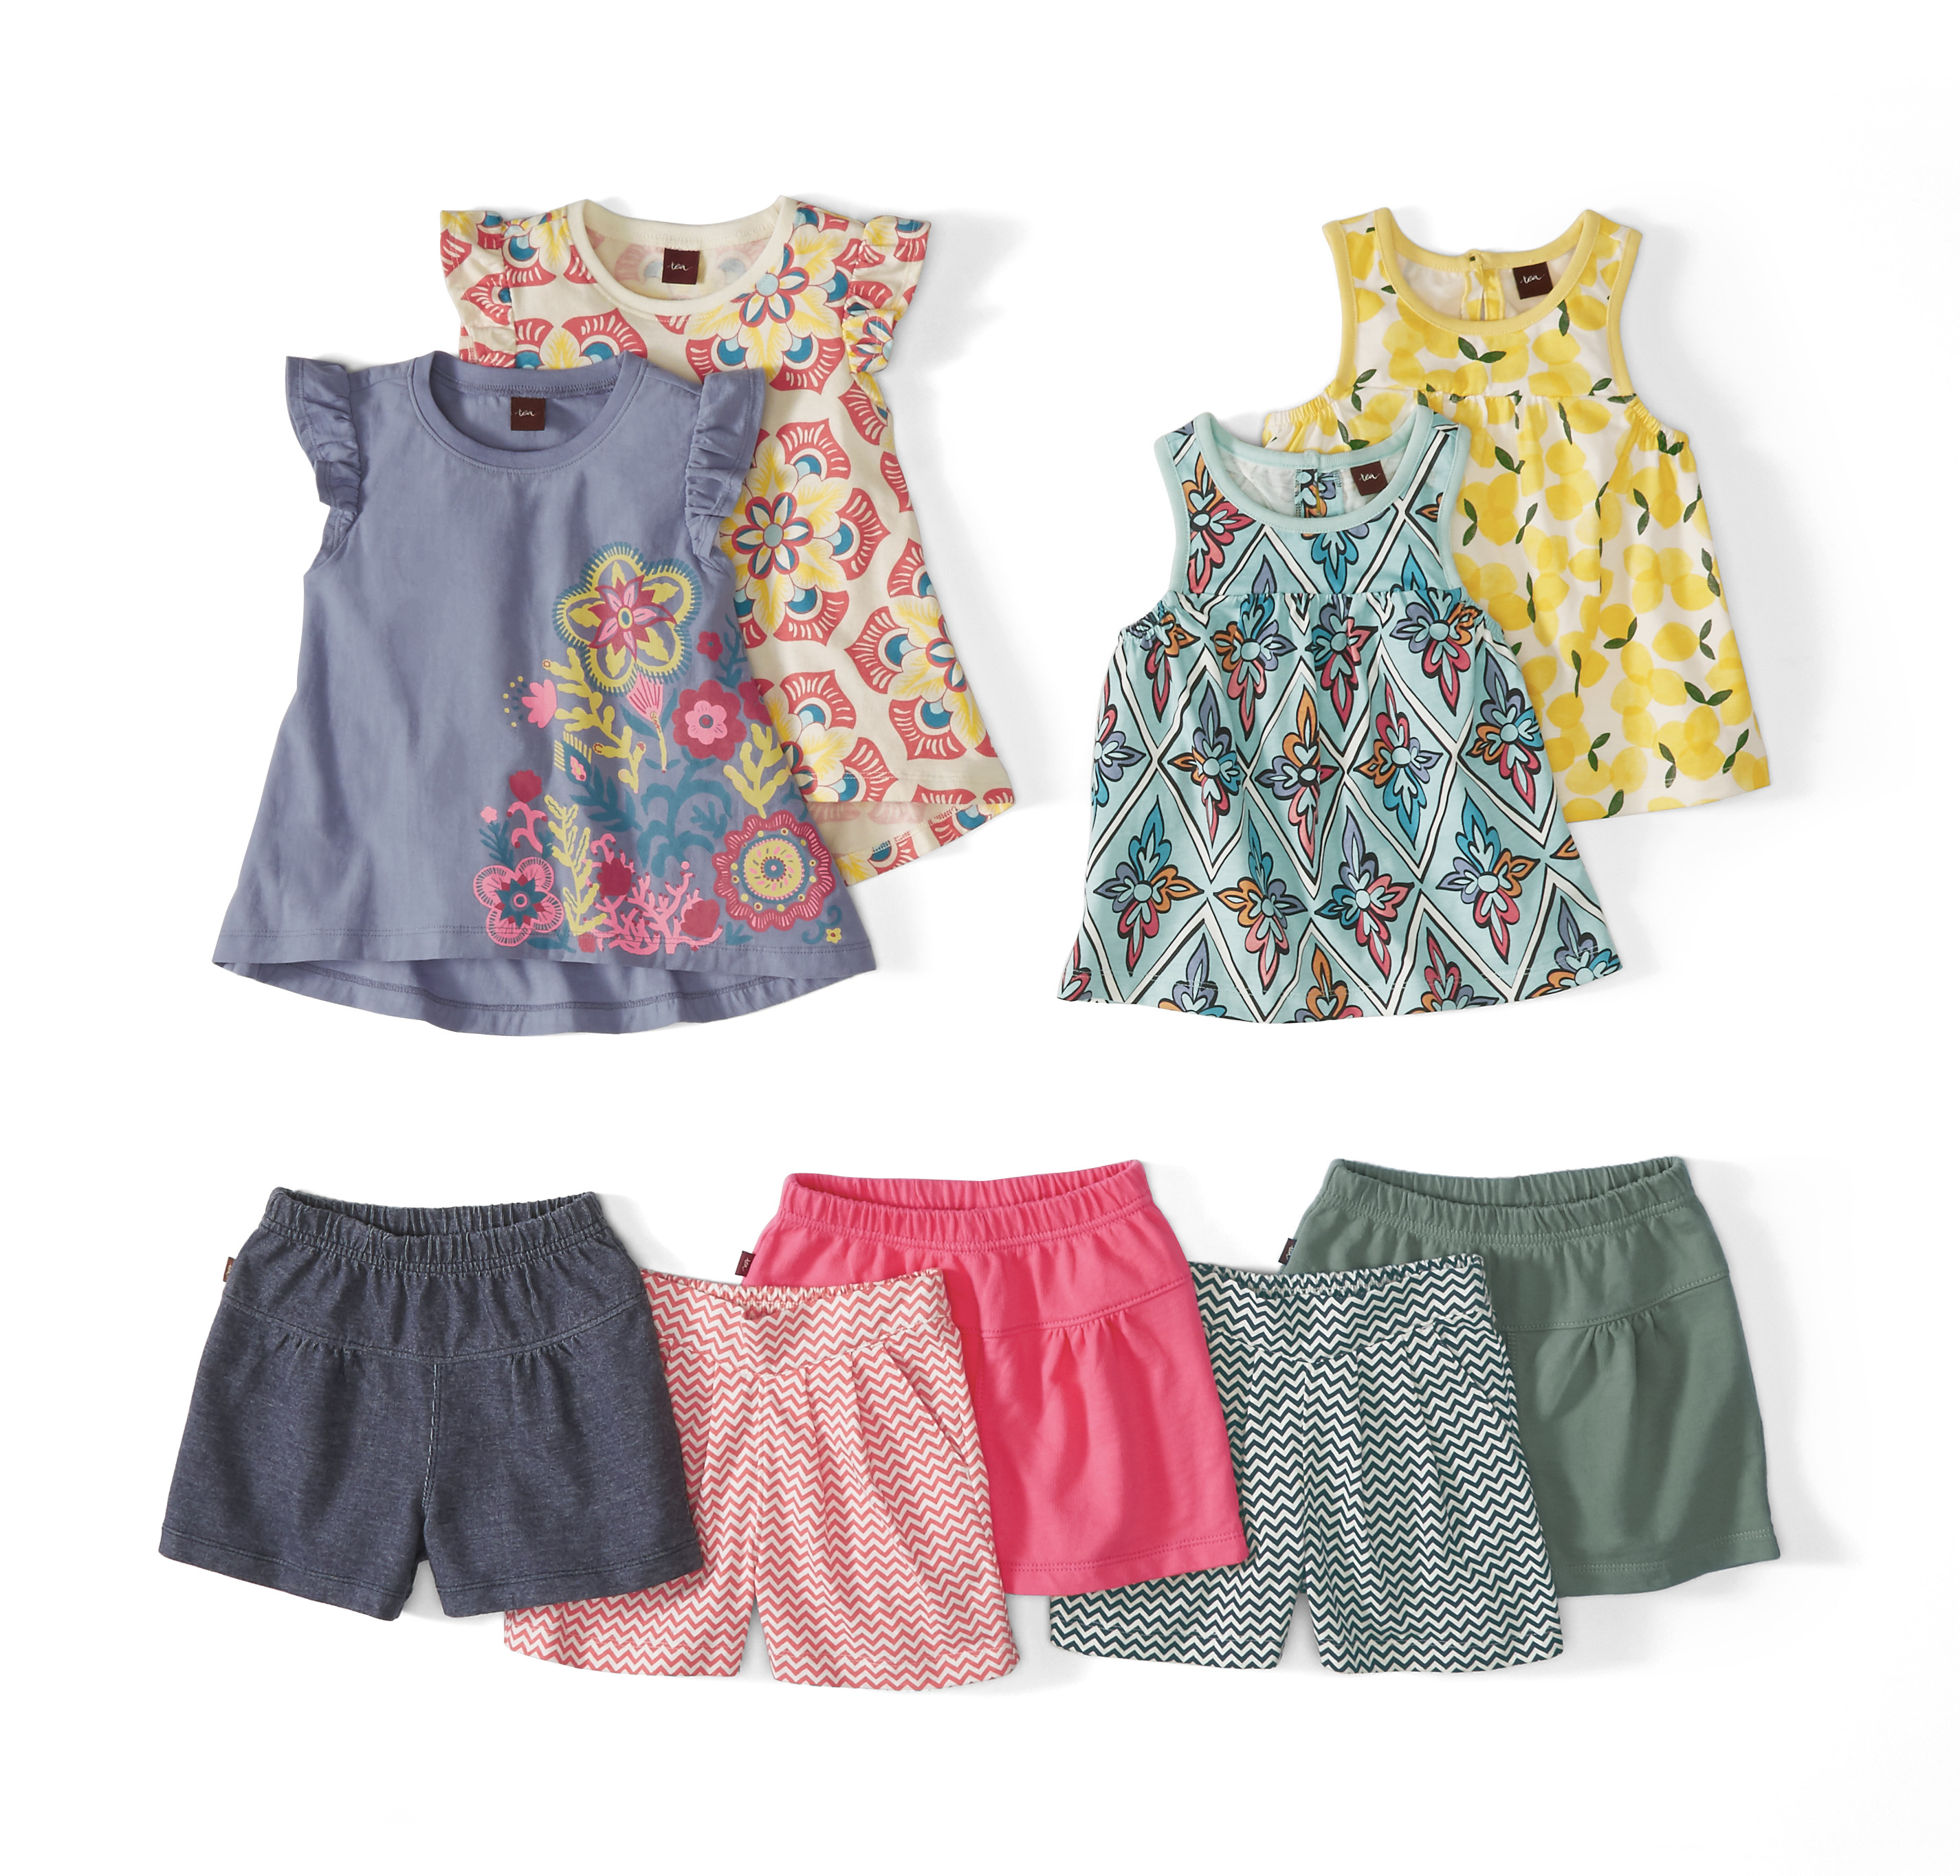 Tea Collection Tops and Shorts